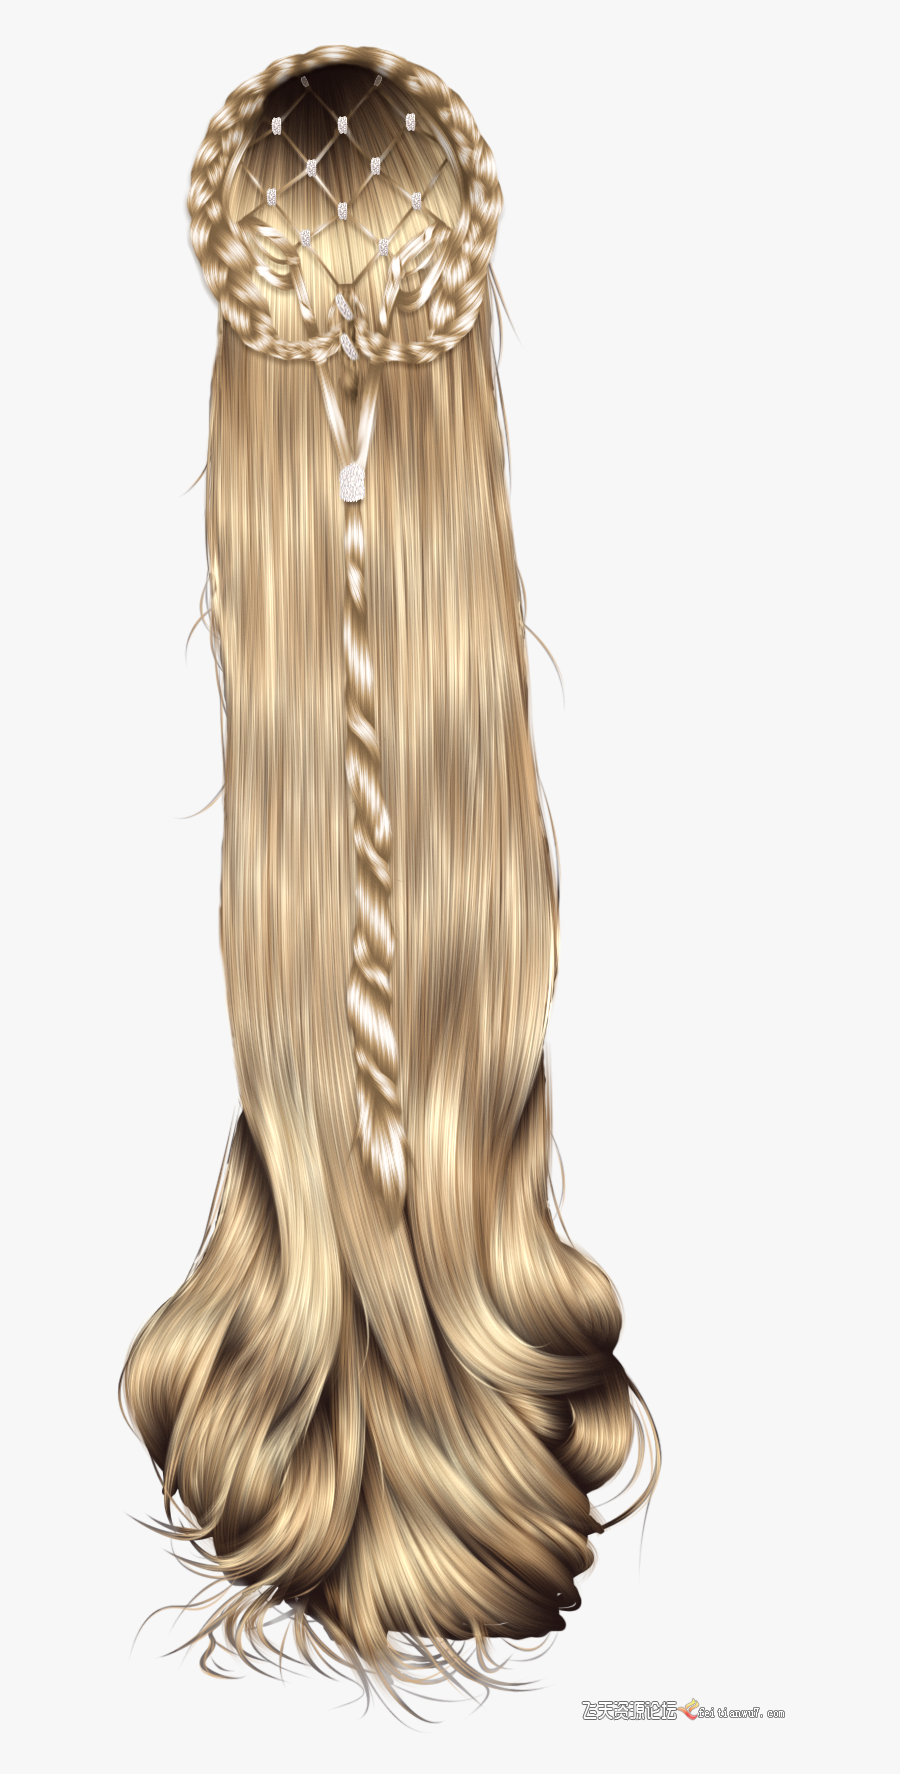 Hairstyle Wig Clip Art - Long Princess Hairstyles, Transparent Clipart